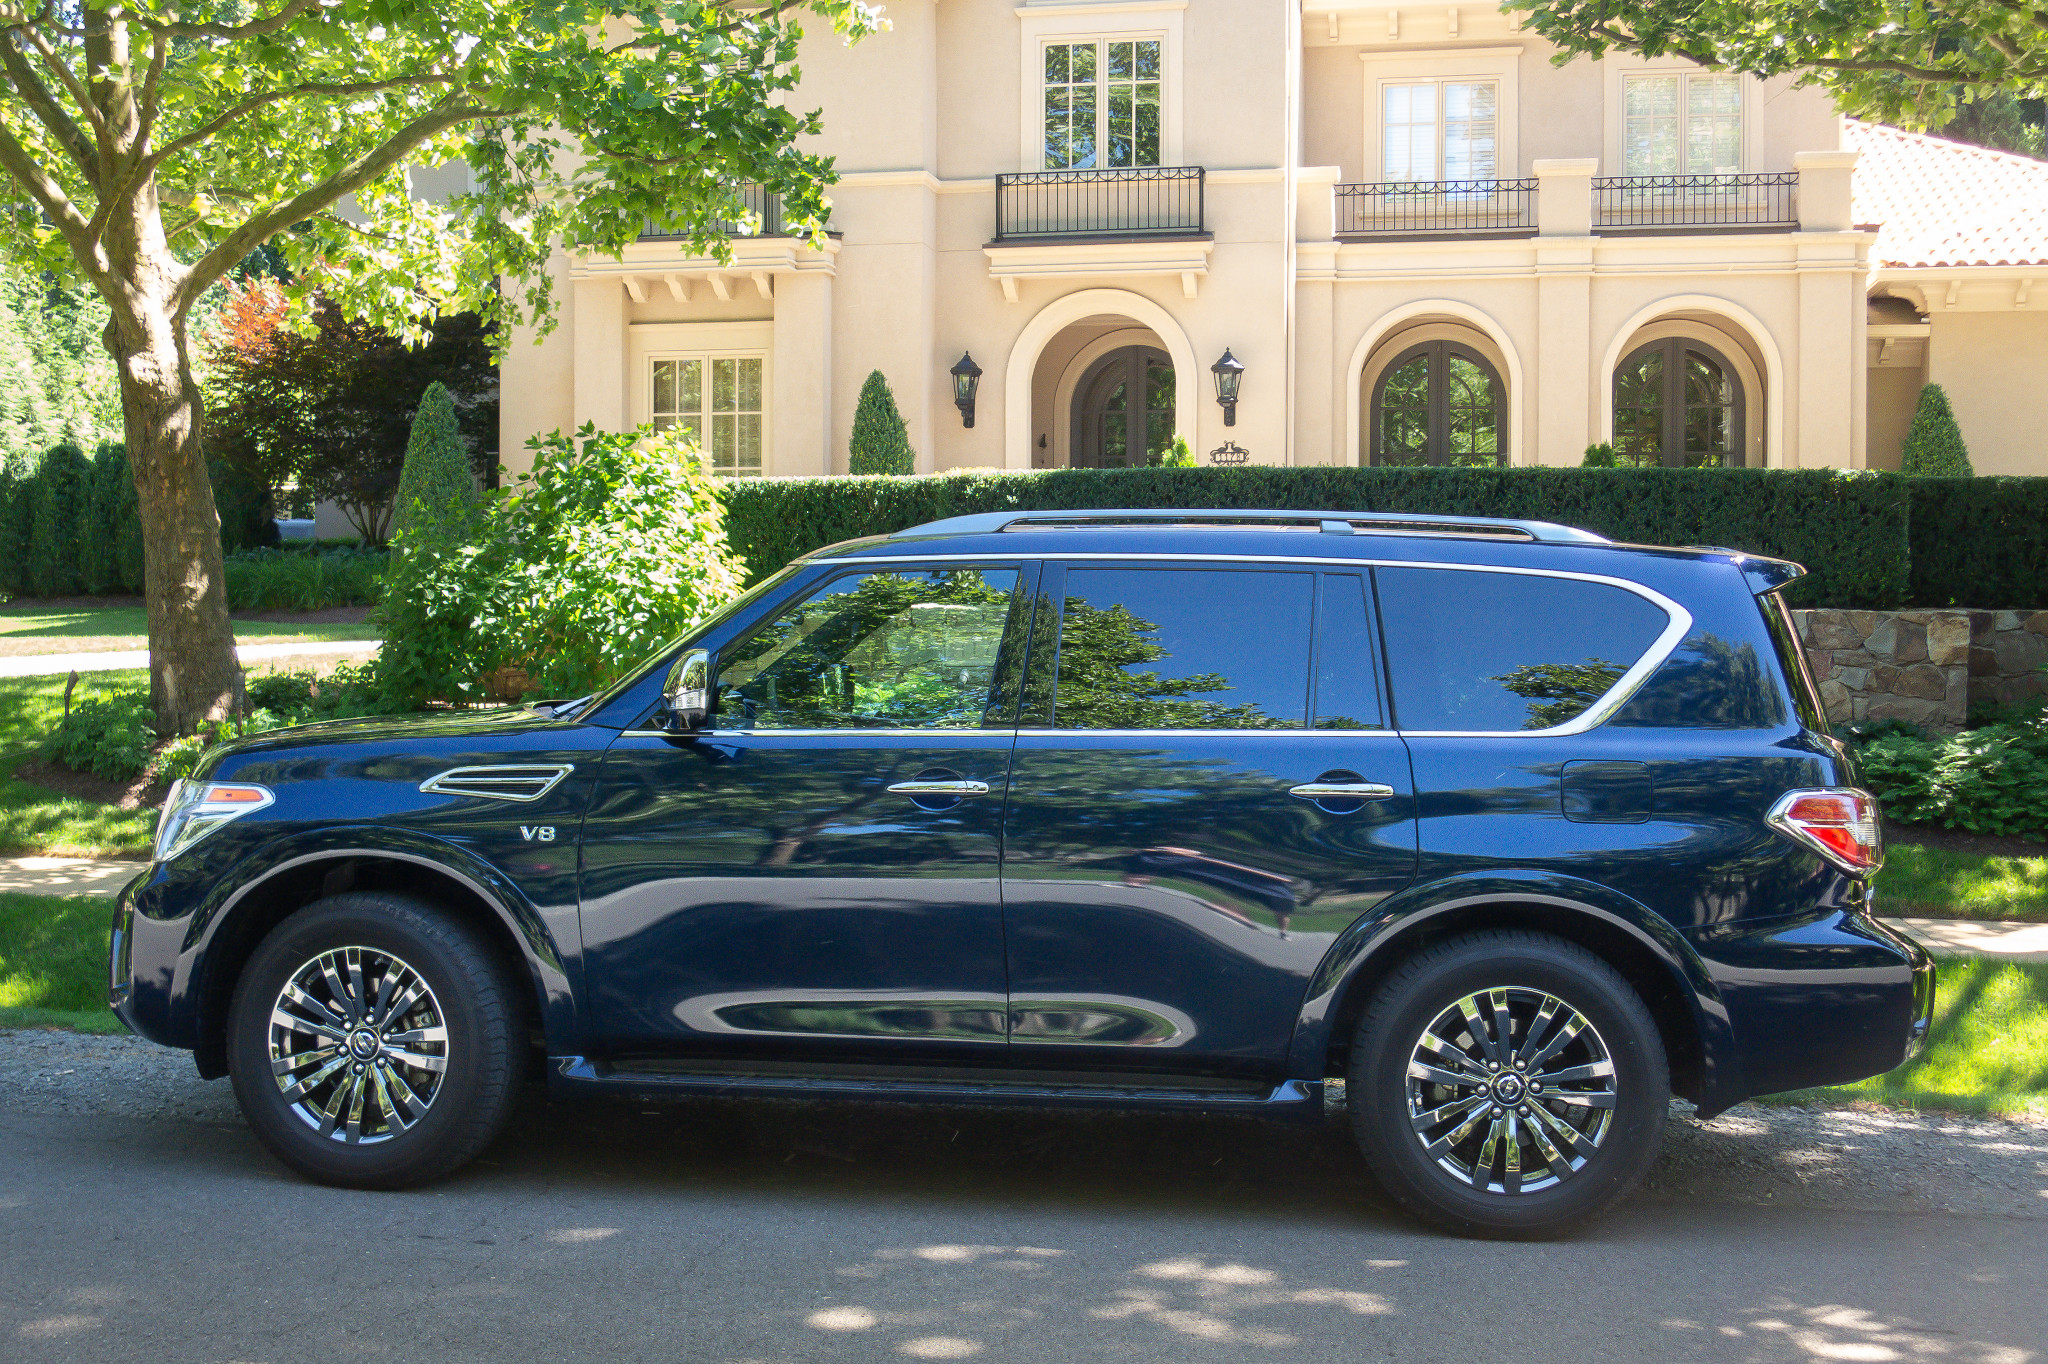 2019 Nissan Armada: 8 Things We Like (and 4 Not So Much)